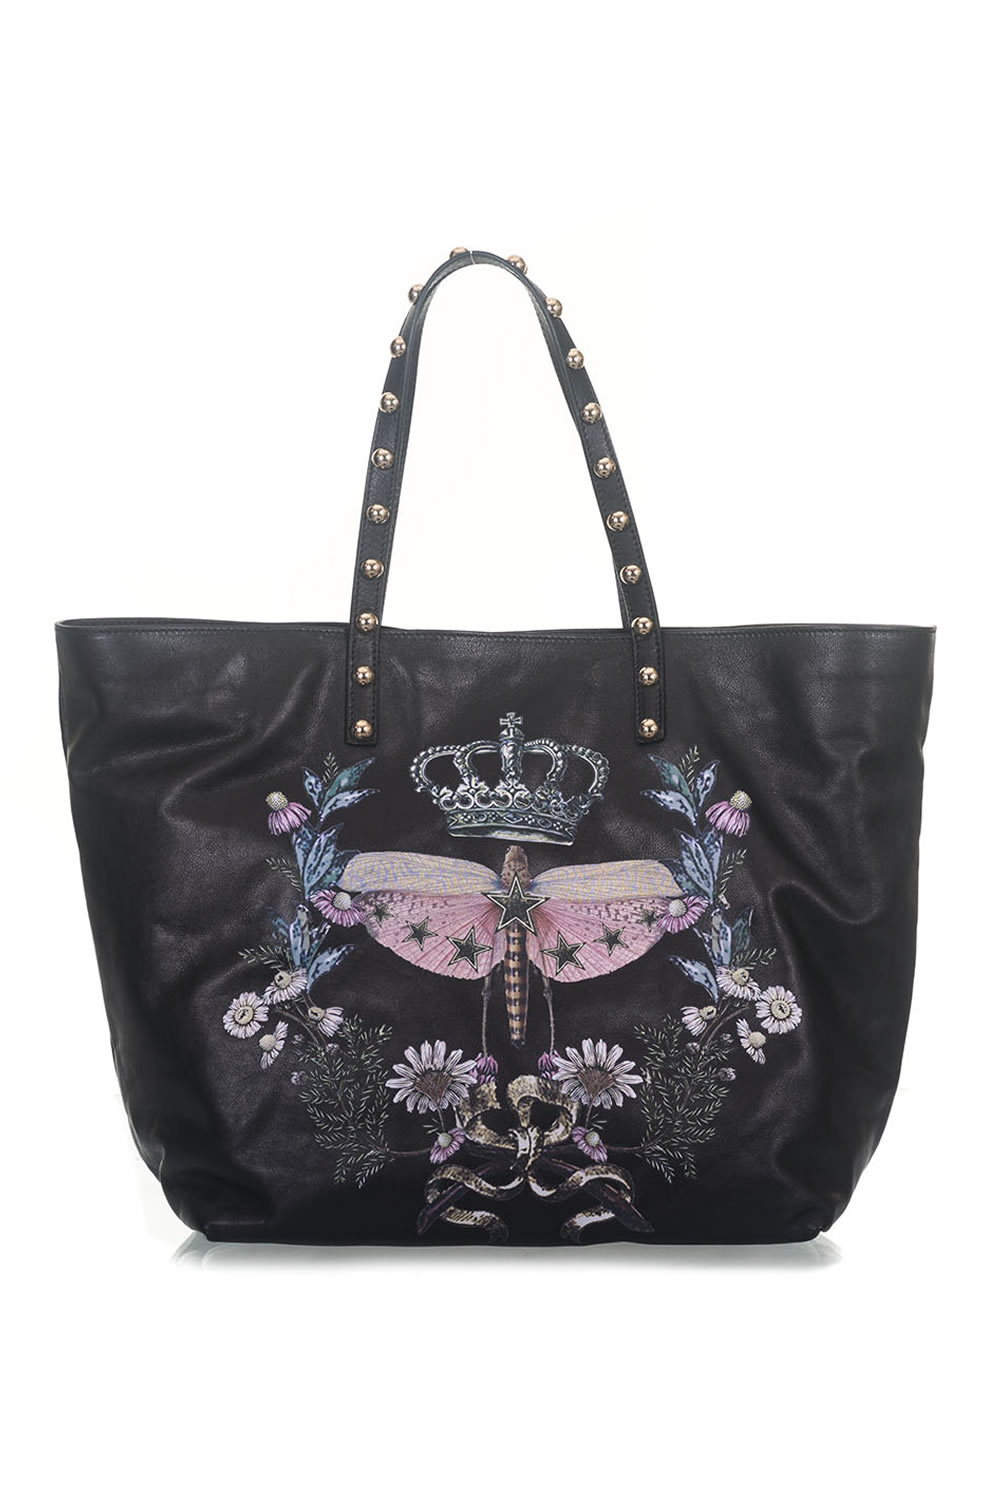 Leather shopping bag Red Valentino Colore  nero. Product  PQ2B0631-CCR0NO  Availability  Sold out a74a5b6cbd3